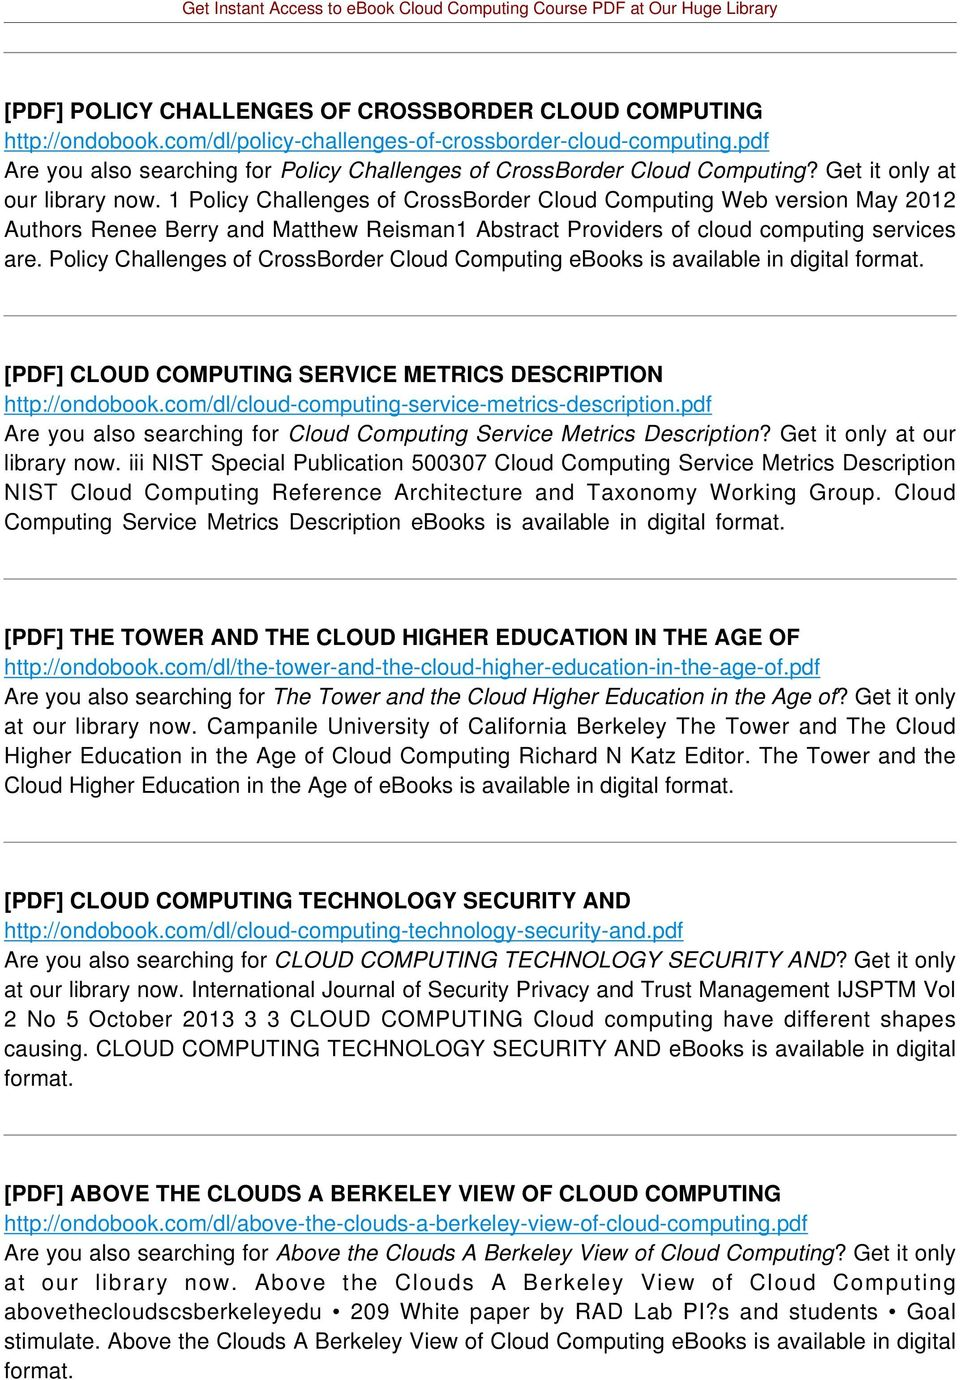 1 Policy Challenges of CrossBorder Cloud Computing Web version May 2012 Authors Renee Berry and Matthew Reisman1 Abstract Providers of cloud computing services are.